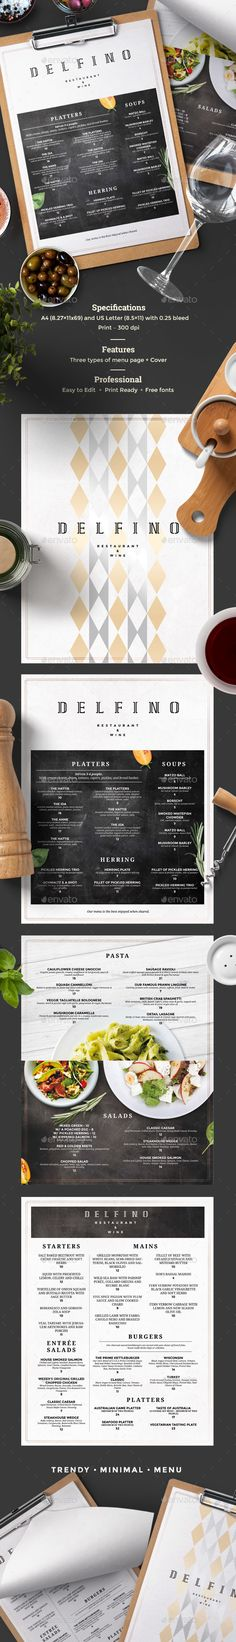 restaurant menu template menu page sizes mm with 3 mm bleed us letter with bleedmode cmyk files incl